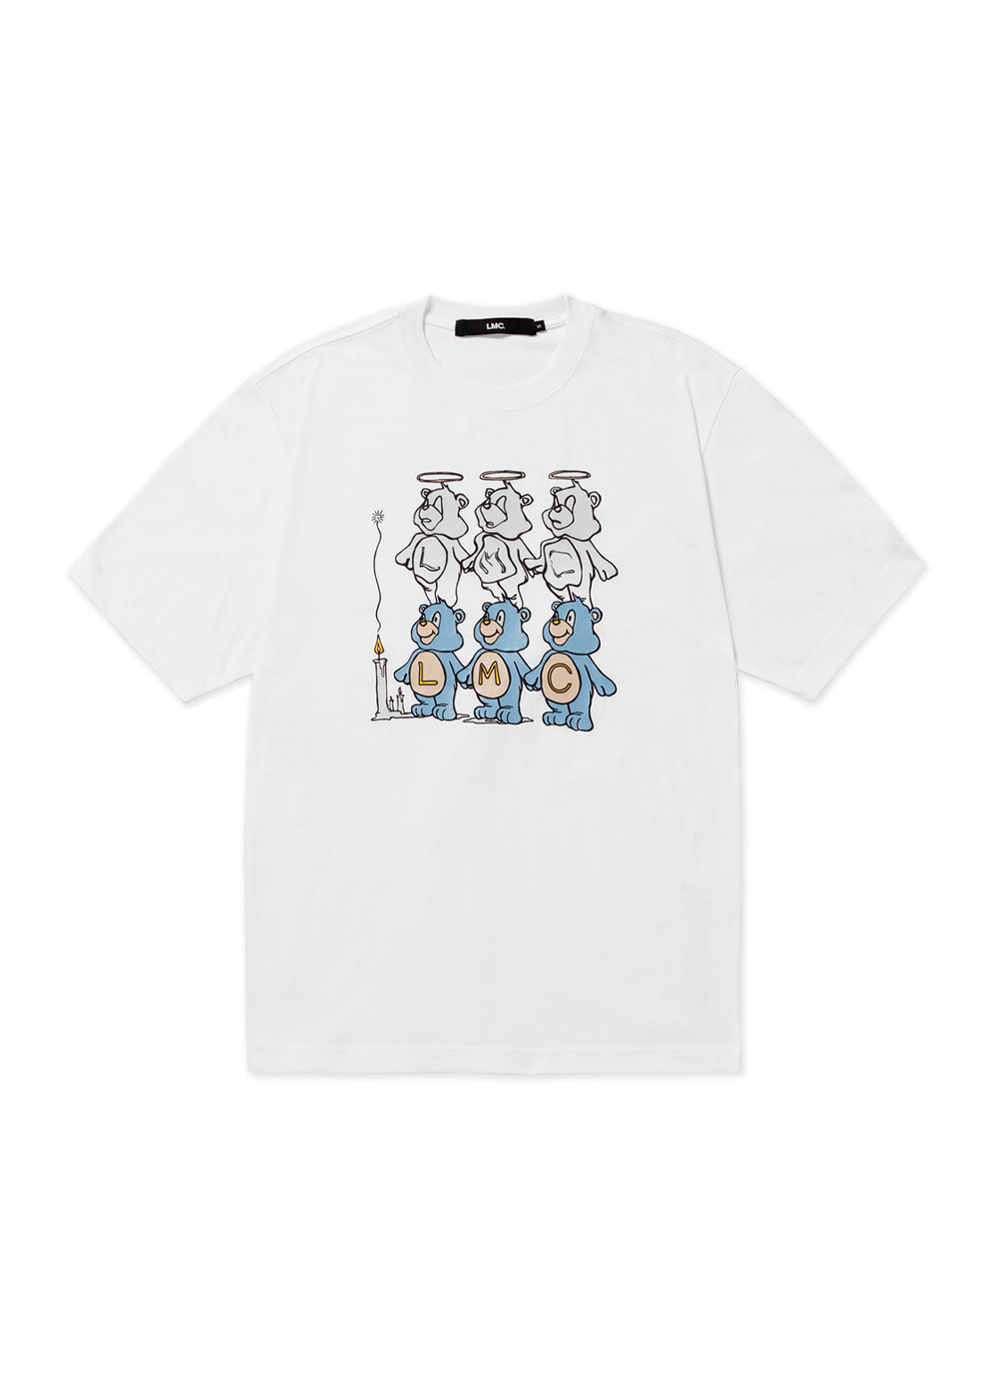 LMC THREE BEARS TEE white